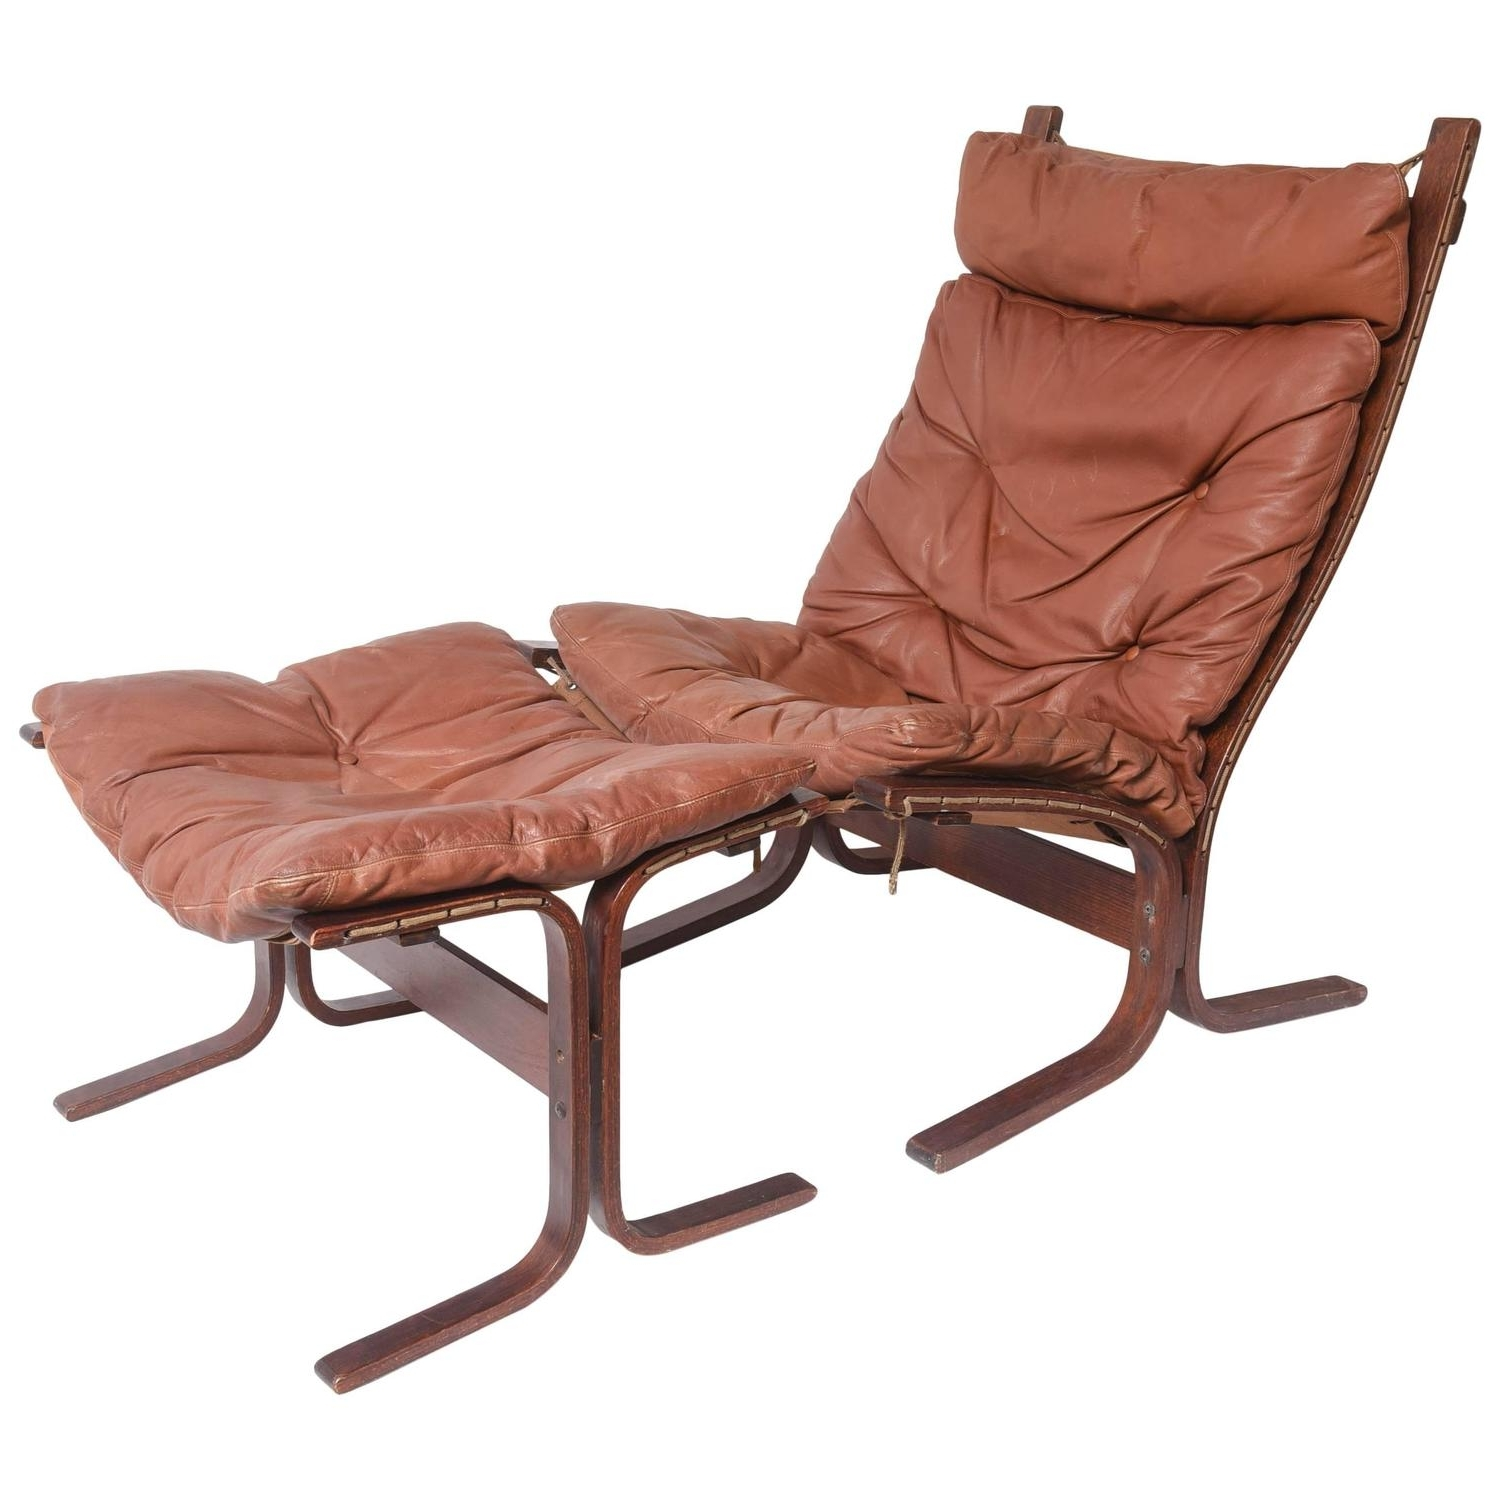 Most Current Chaise Lounge Chairs With Ottoman For Lounge Chair : Chaise Lounge Chair Scandinavian Chair And Ottoman (View 10 of 15)